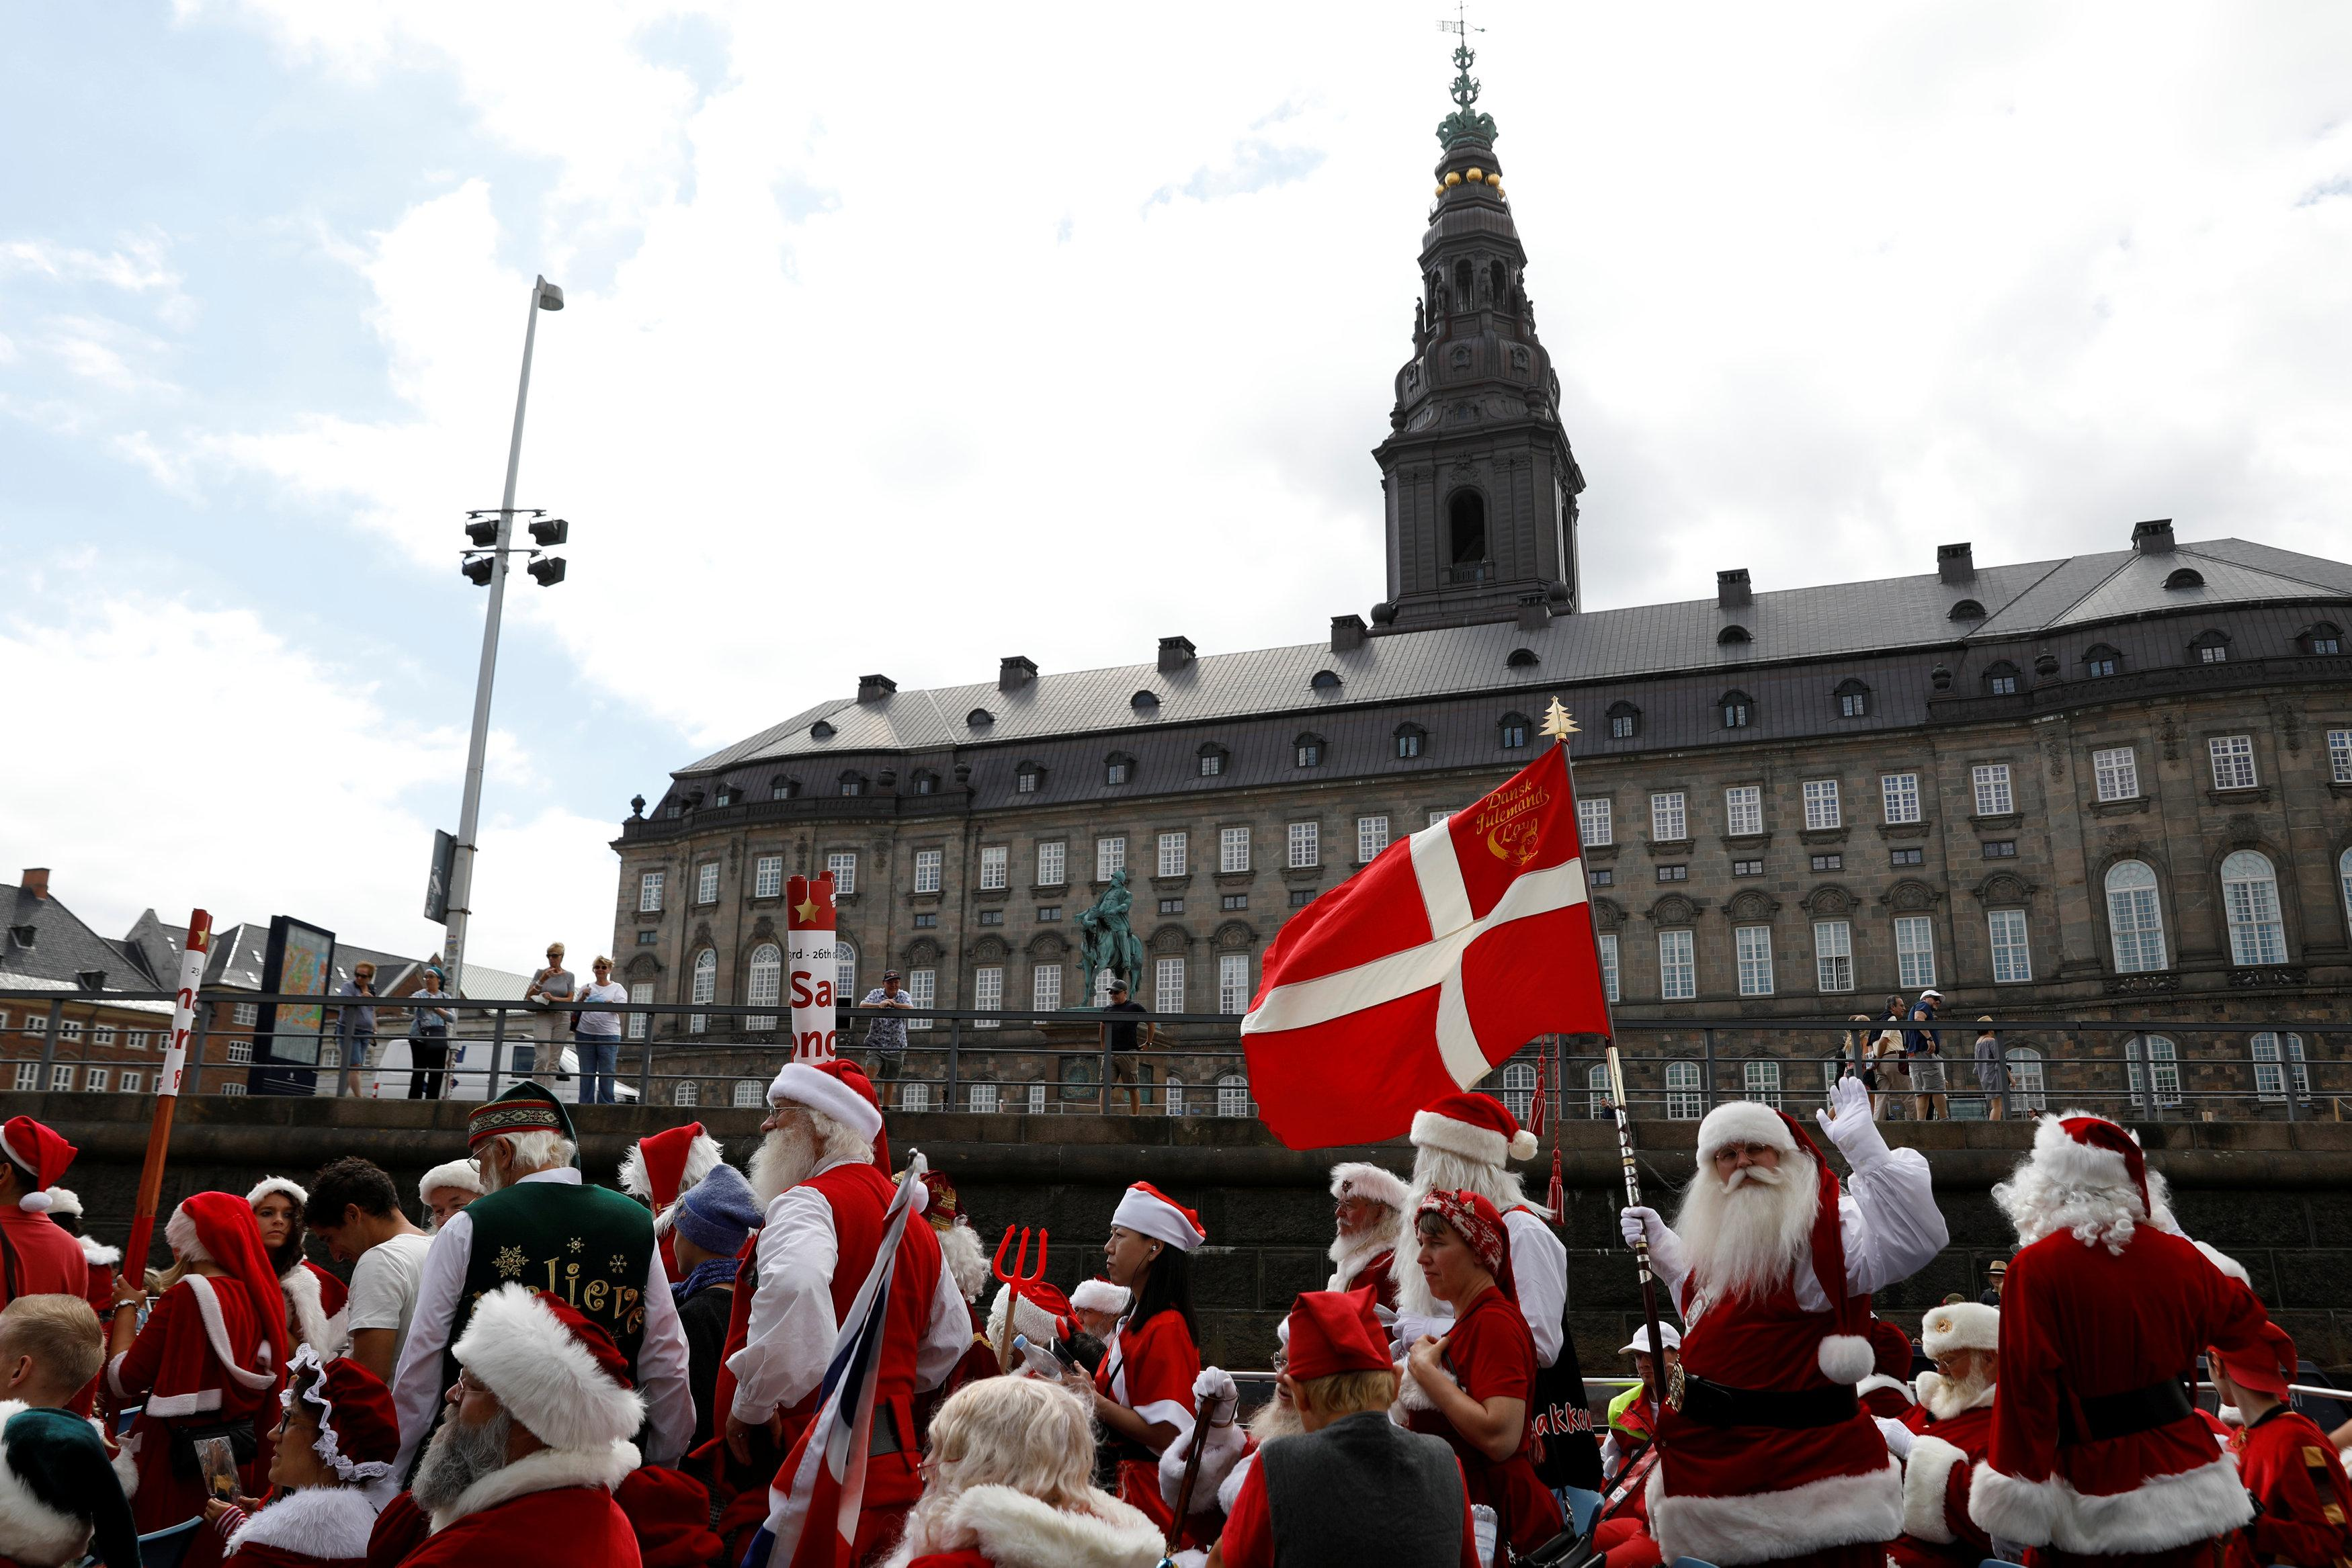 People dressed as Santa Claus arrive outside Christiansborg Palace as they take part in the World Santa Claus Congress, an annual event held every summer in Copenhagen, Denmark, July 23, 2018.  Andrew Kelly